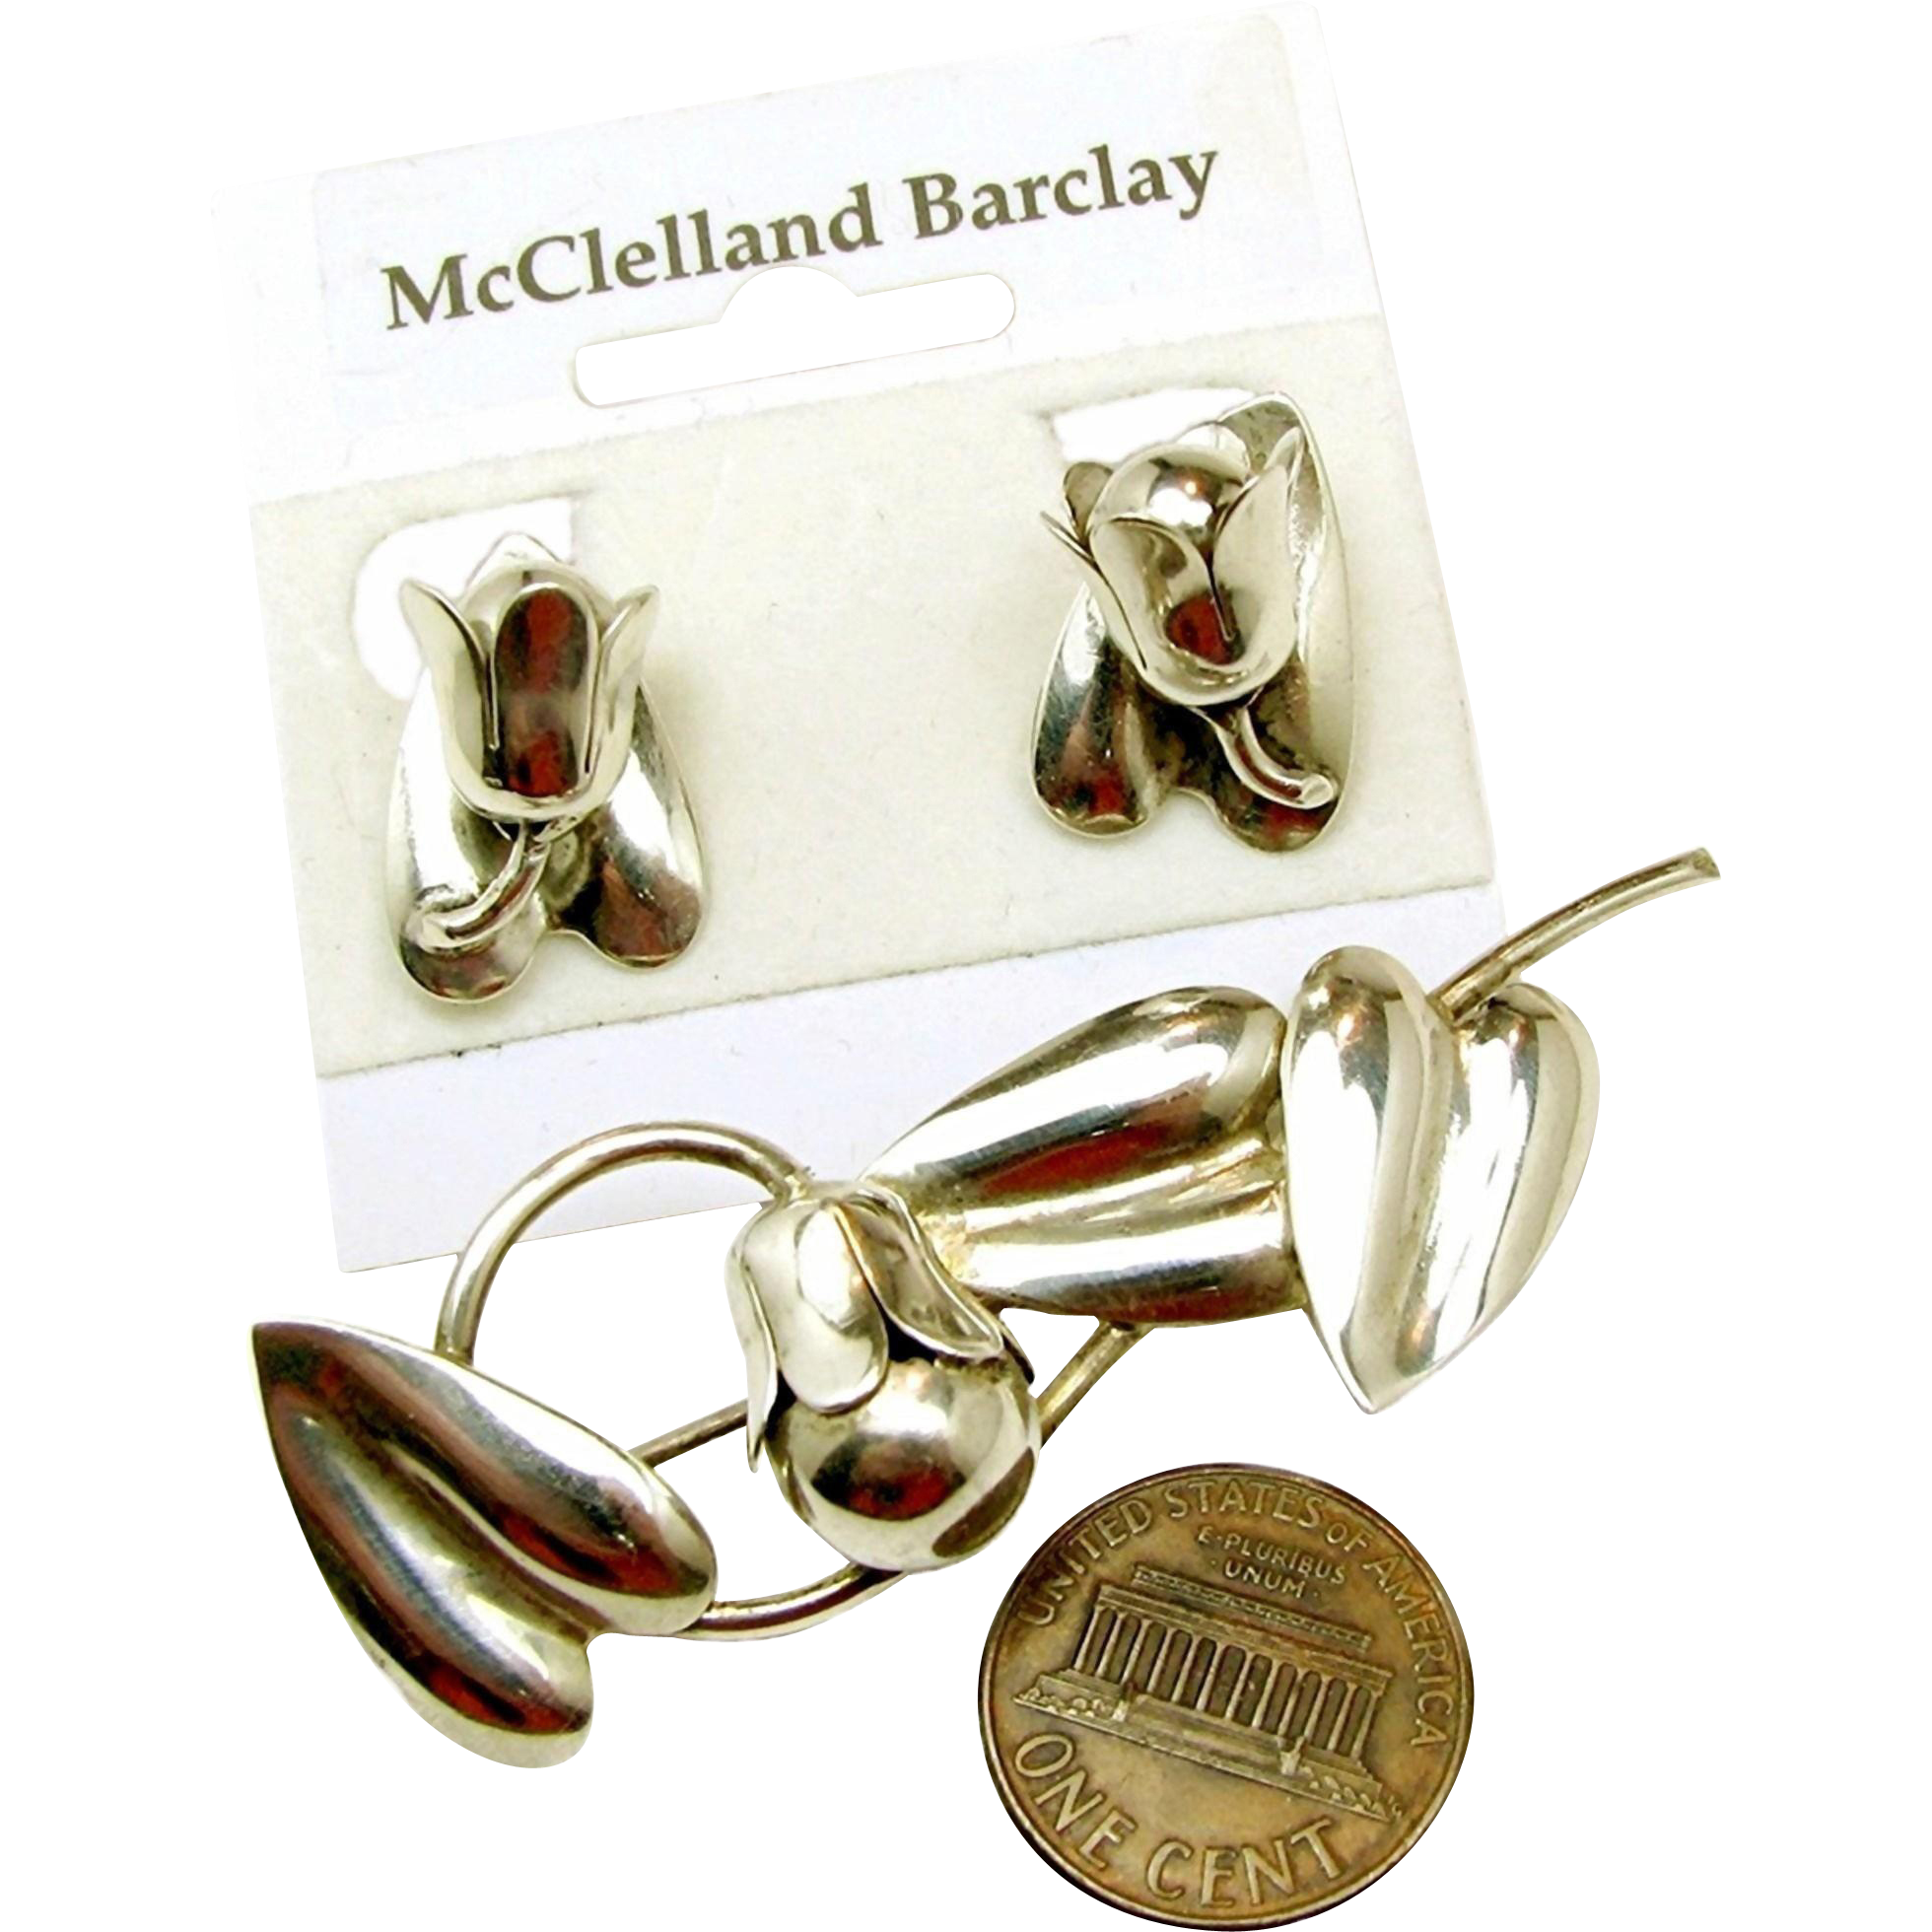 Exquisite McCLELLAND BARCLAY's Sterling Floral Bells Brooch 'n Earrings c.1930's